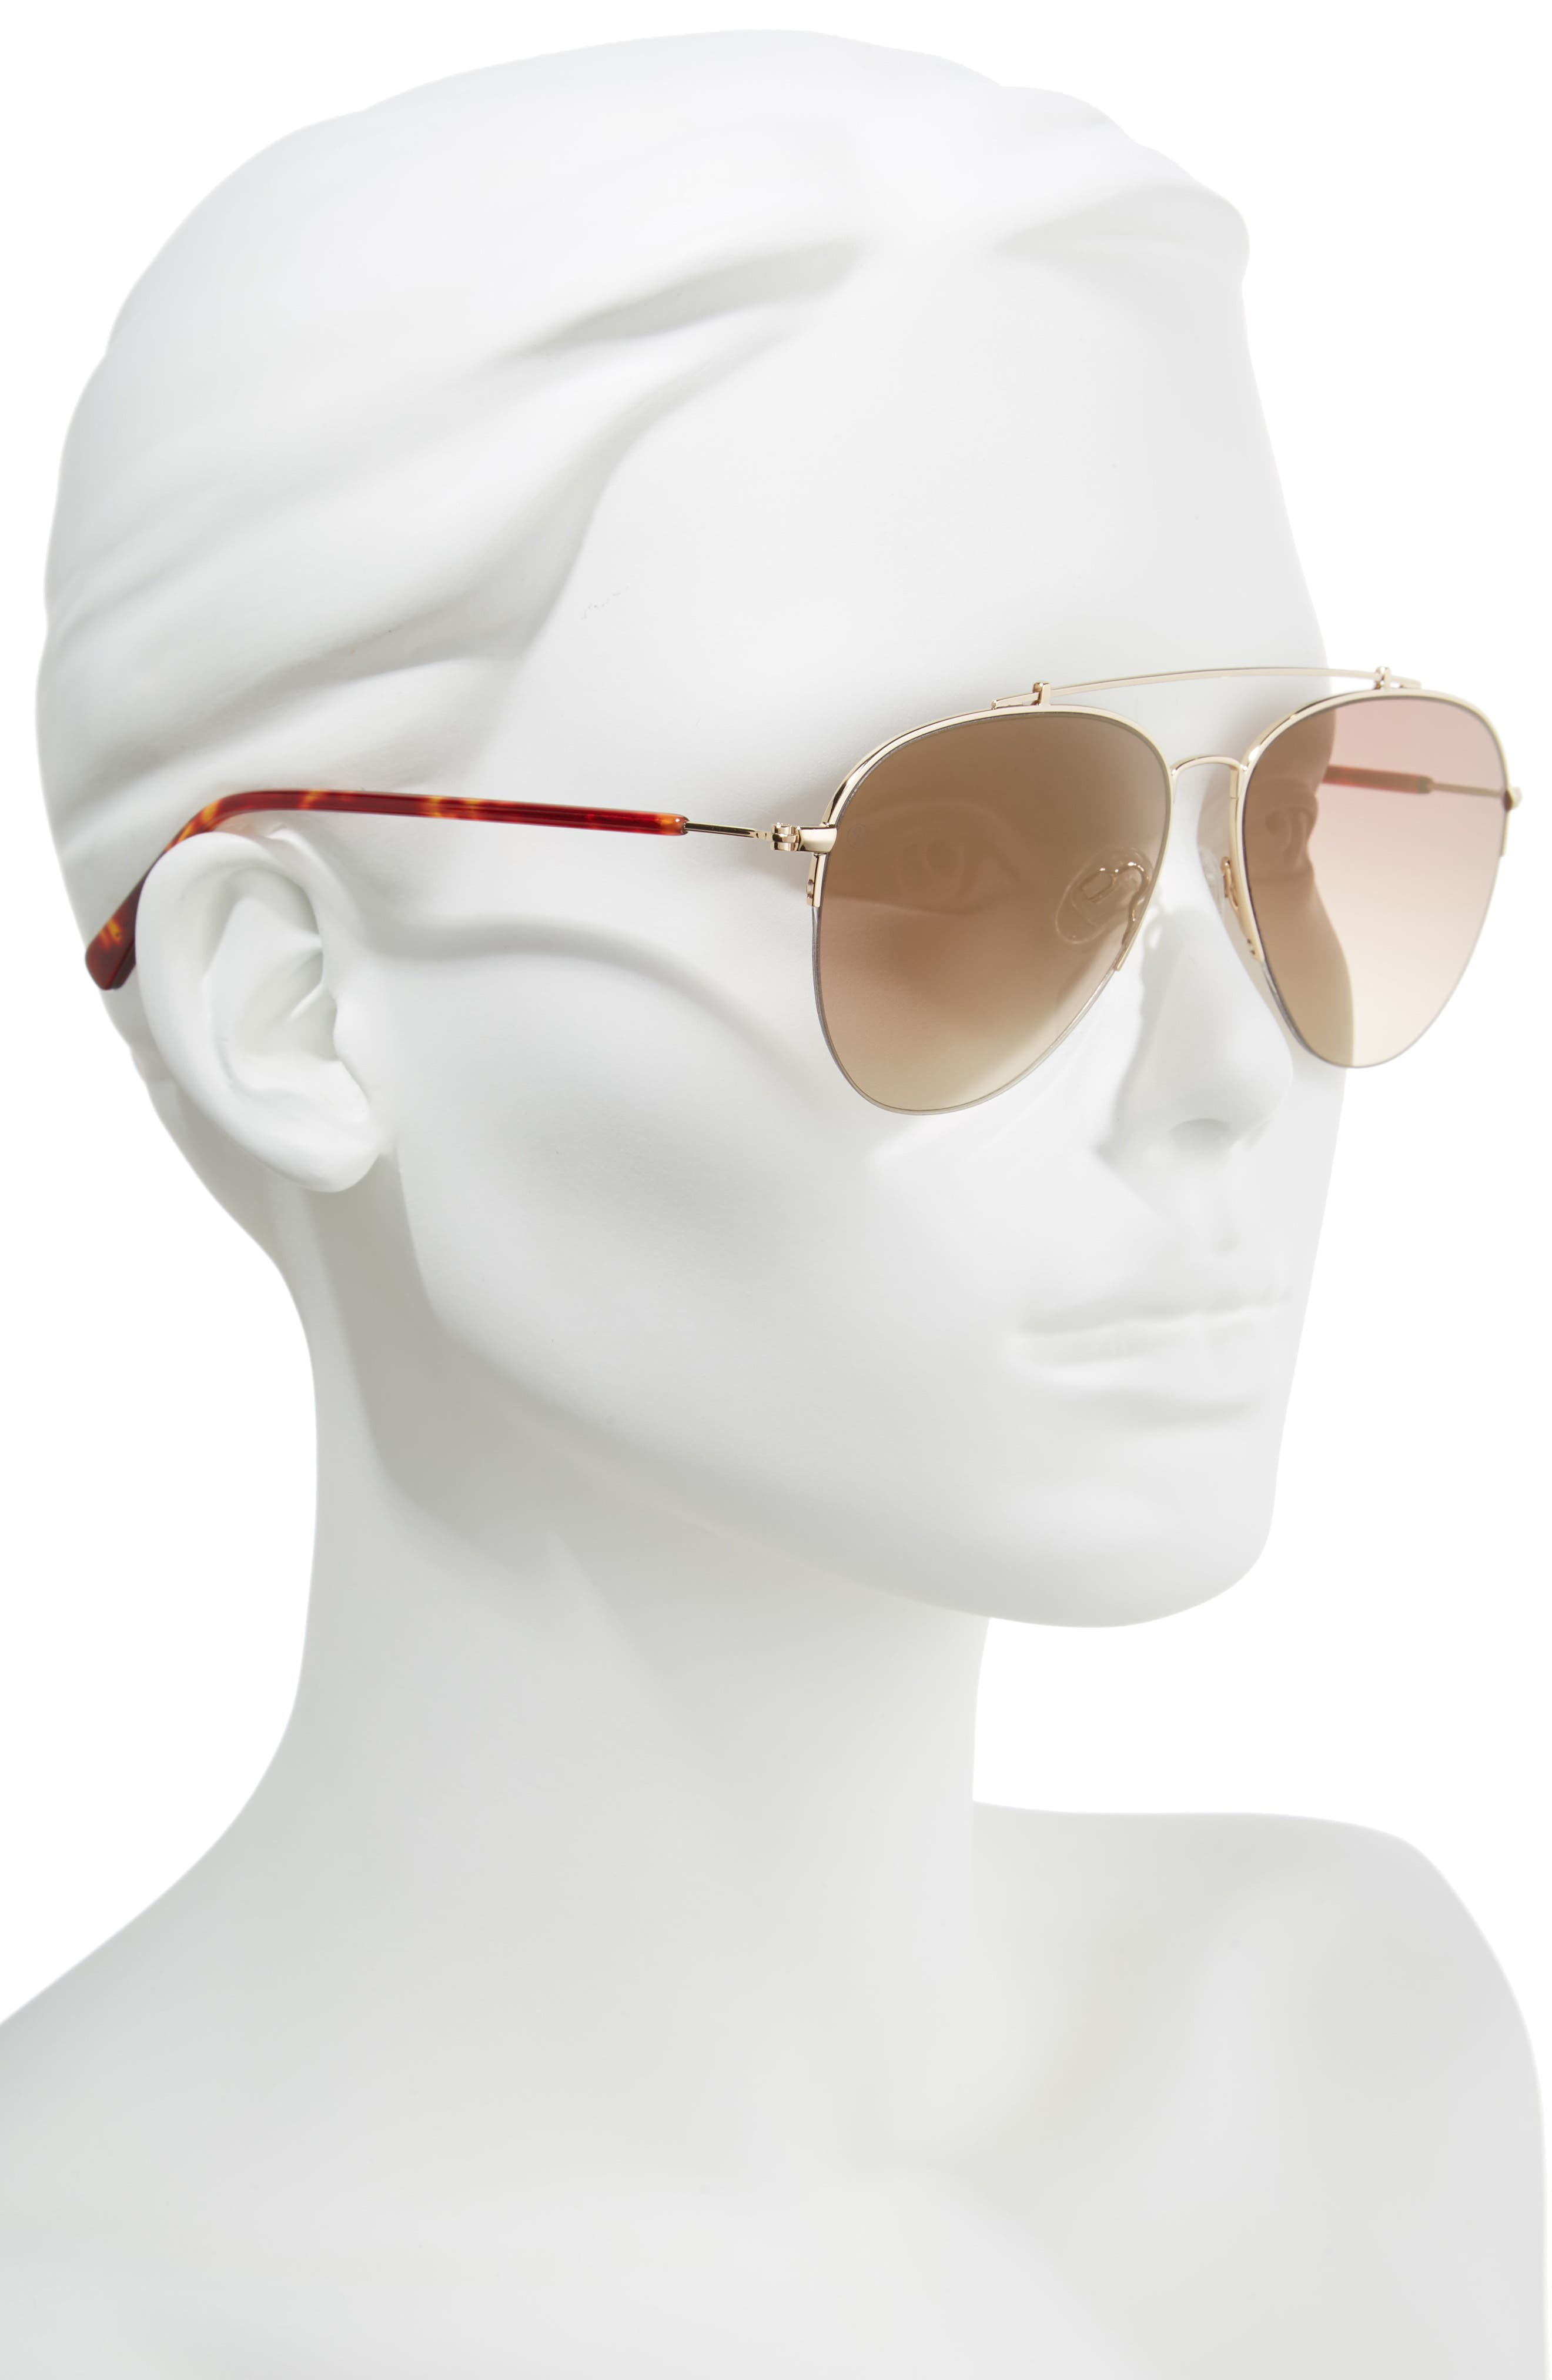 D'BLANC The Last 57mm Aviator Sunglasses,                             Alternate thumbnail 2, color,                             Toffee/ Brown